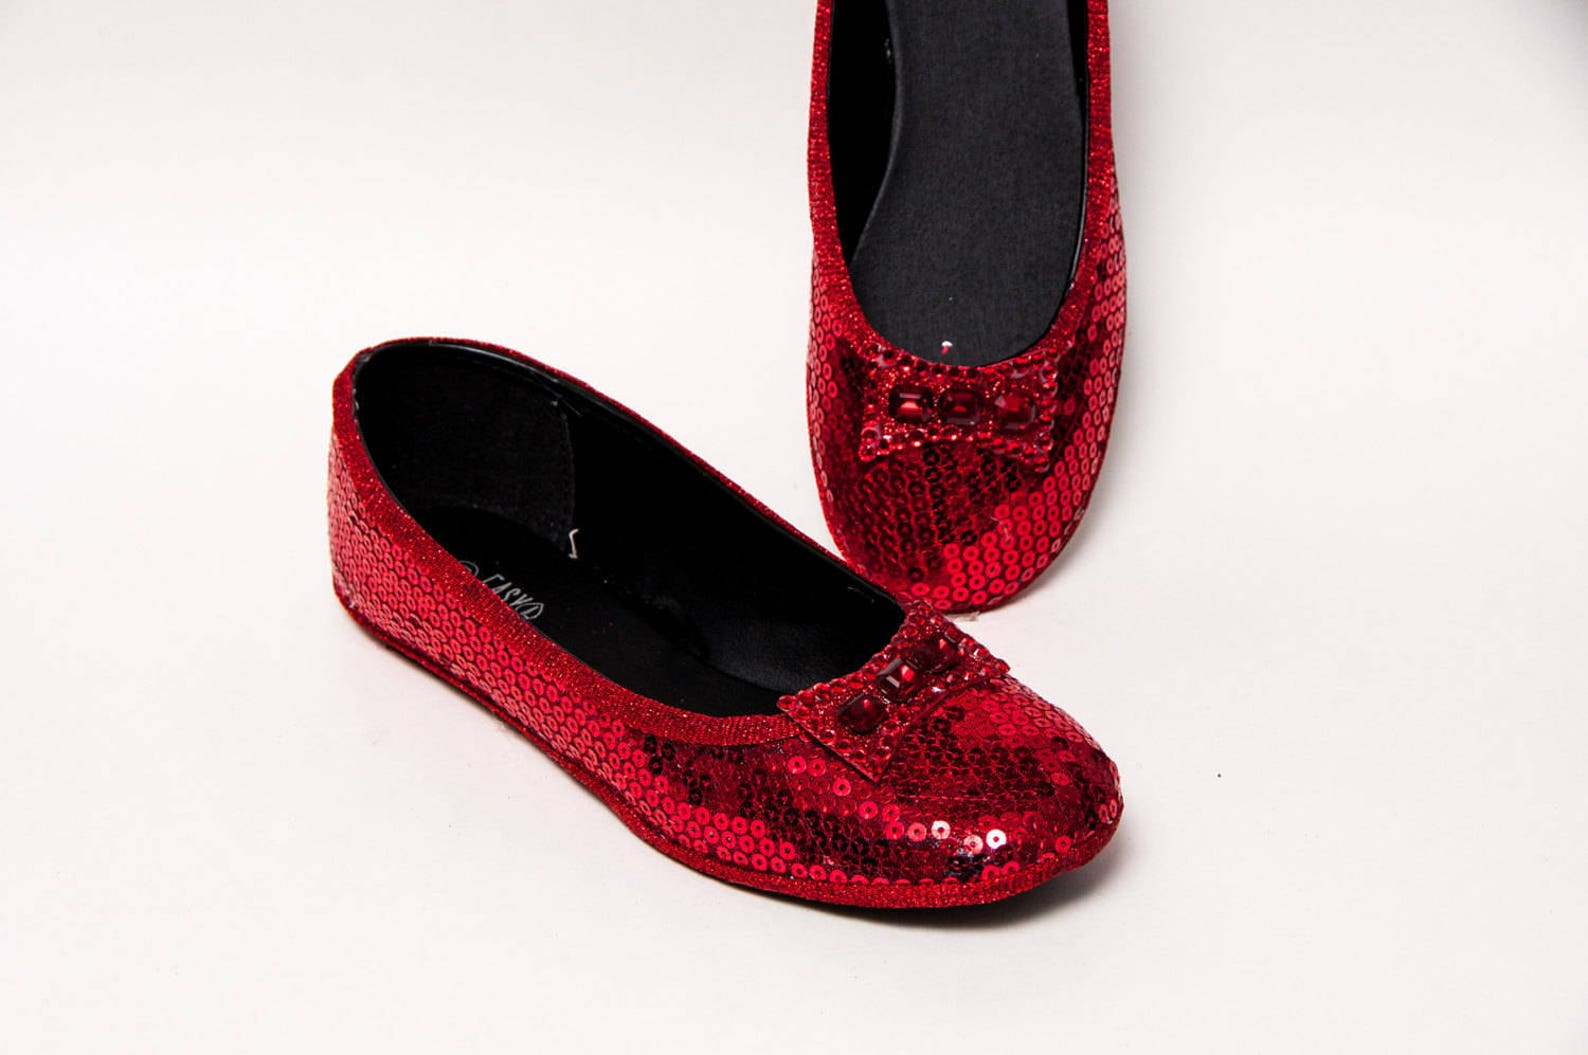 bridal - sequin red ballet slippers flats shoes with red crystal rhinestone bows